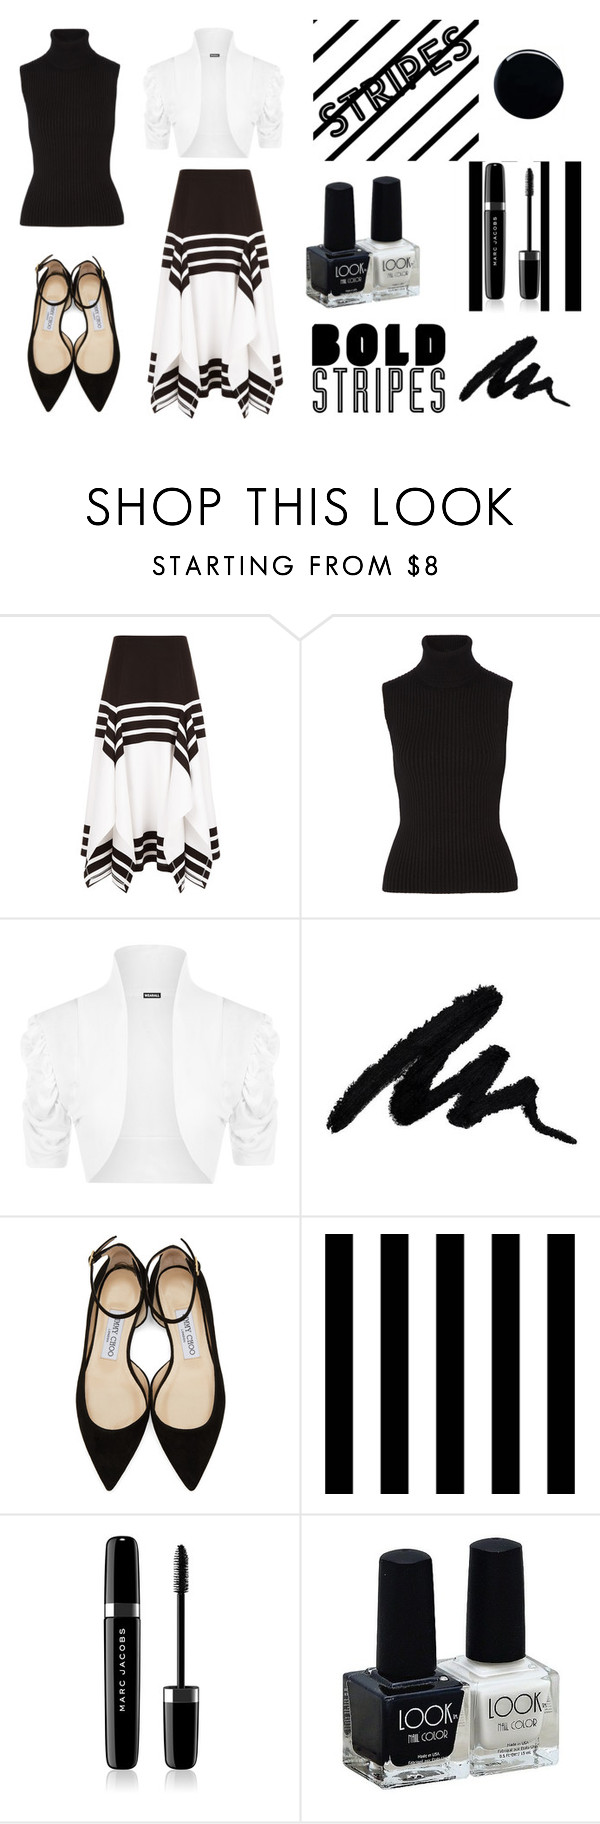 """""""Stripes Contest"""" by ahsoka-star-wars ❤ liked on Polyvore featuring Rosetta Getty, Michael Kors, WearAll, Jimmy Choo, Tempaper, Marc Jacobs and JINsoon"""